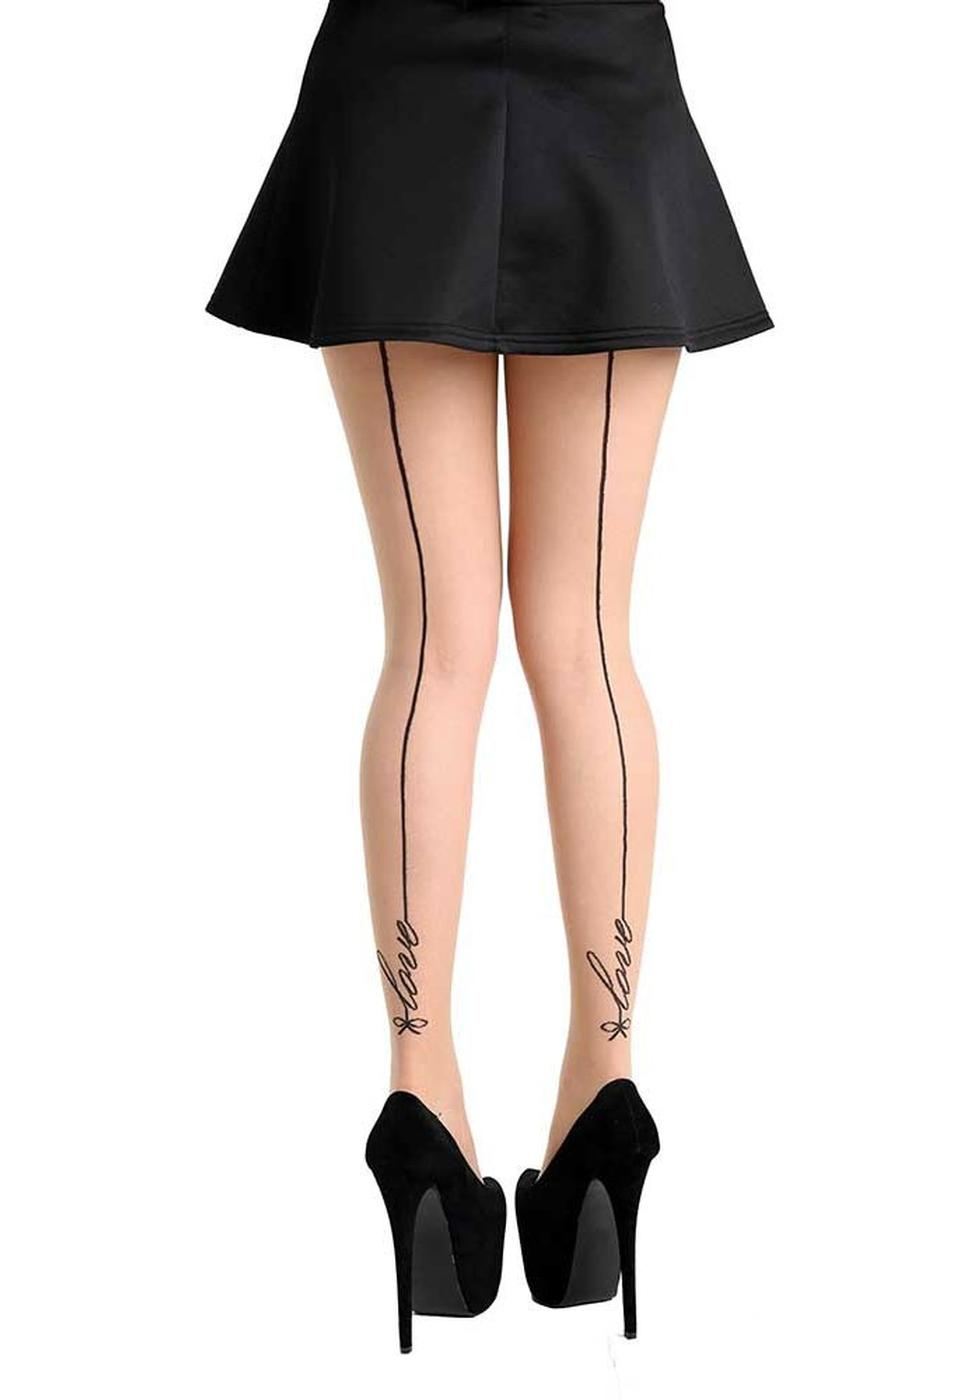 + PAMELA MANN Vintage Signature Love Seamed Tights